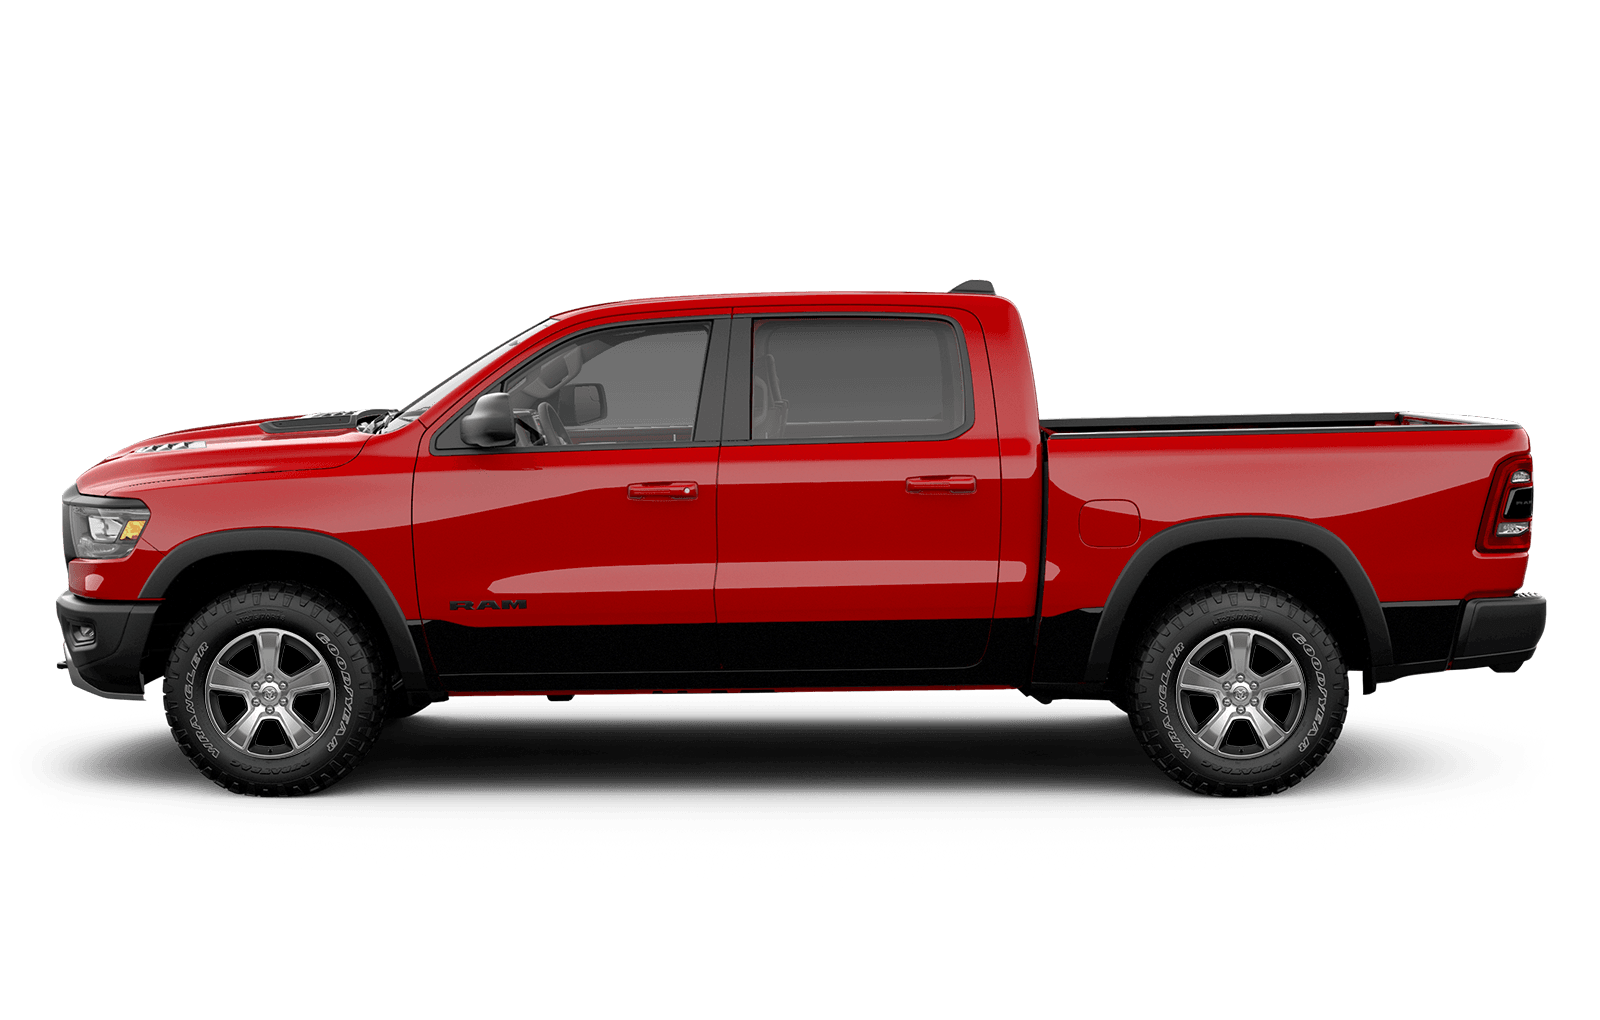 2019 Ram 1500 20inch aluminum wheels standard on Sport or available for Laramie